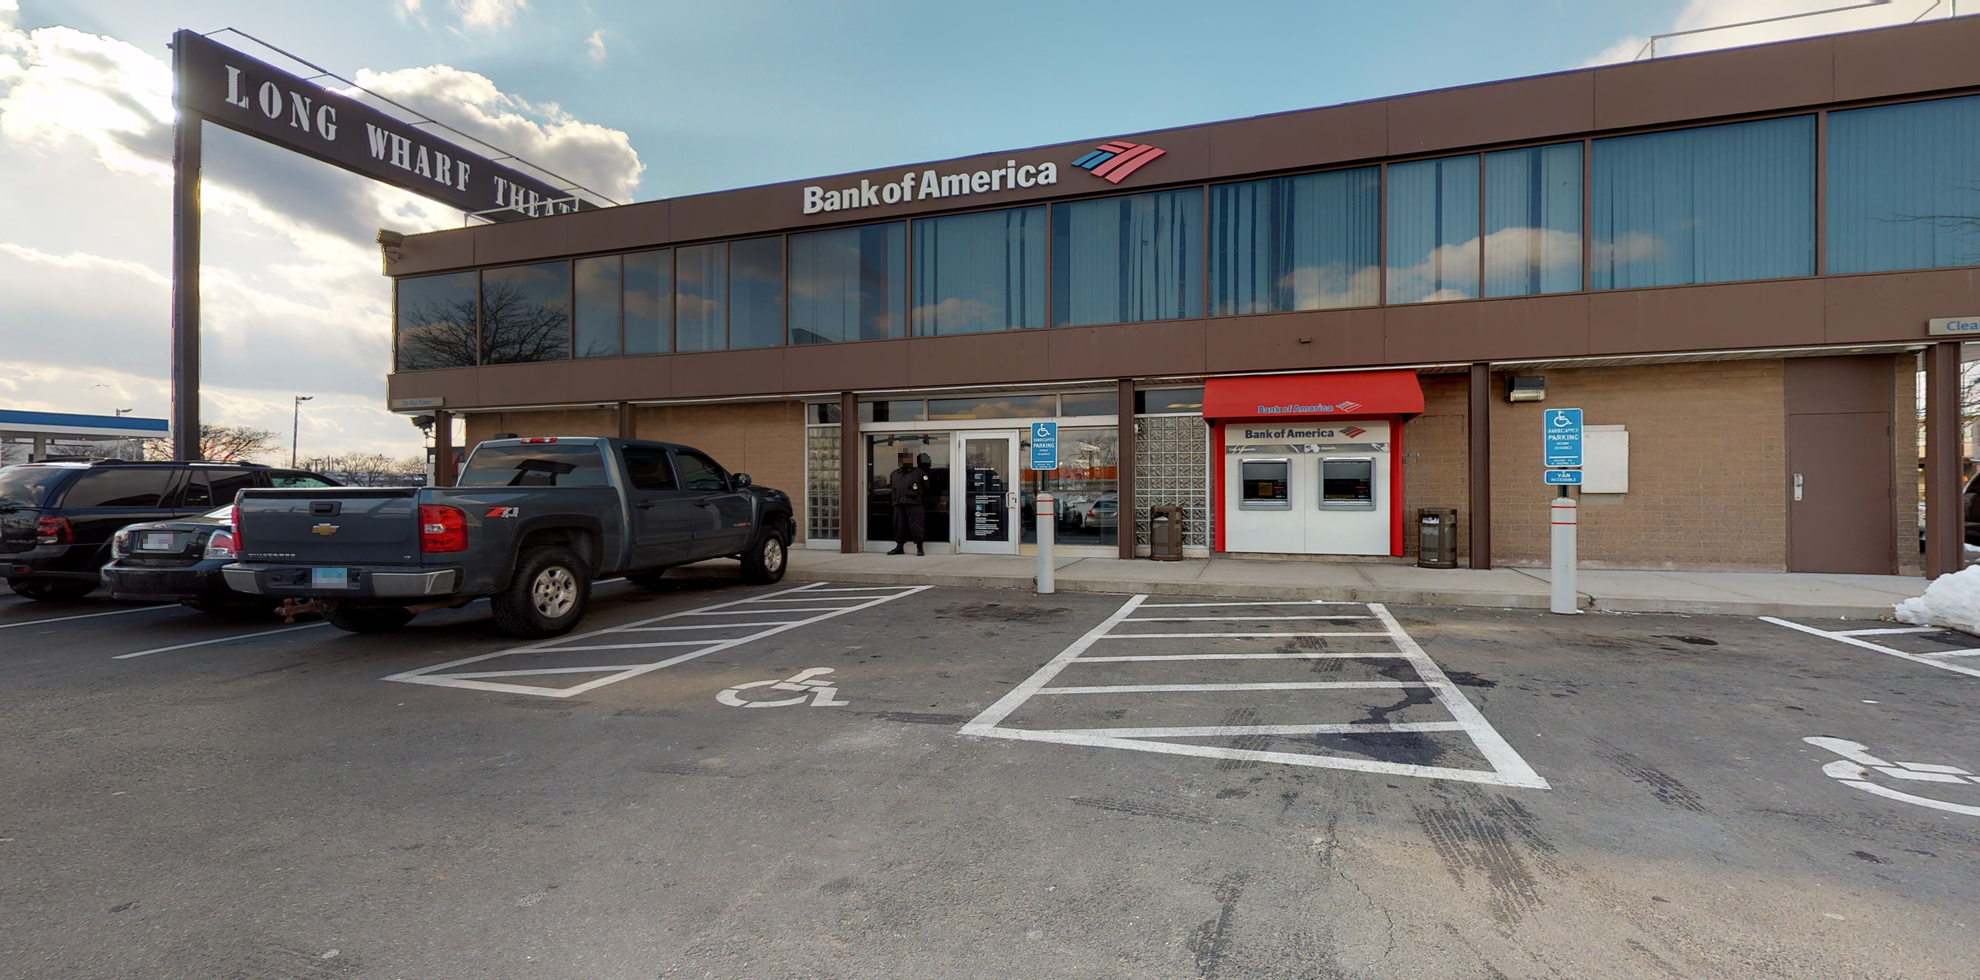 Bank of America financial center with walk-up ATM   250 Sargent Dr, New Haven, CT 06511